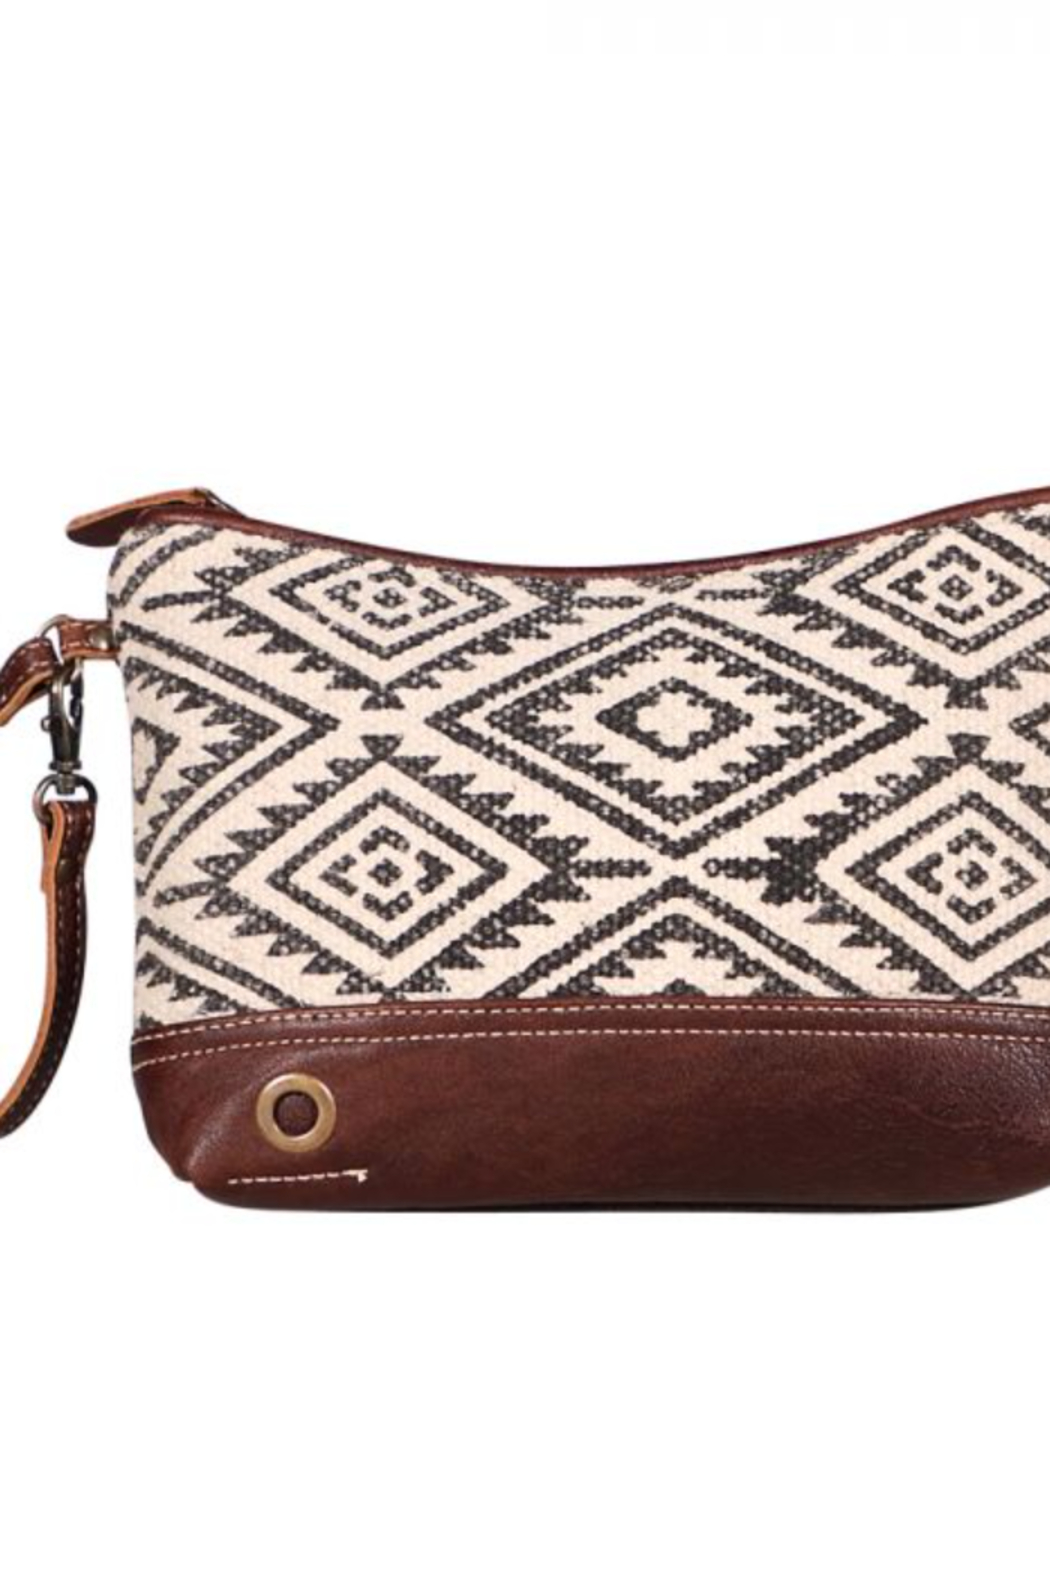 MarkWEST-Myra Bag Pouch Bliss - Main Image